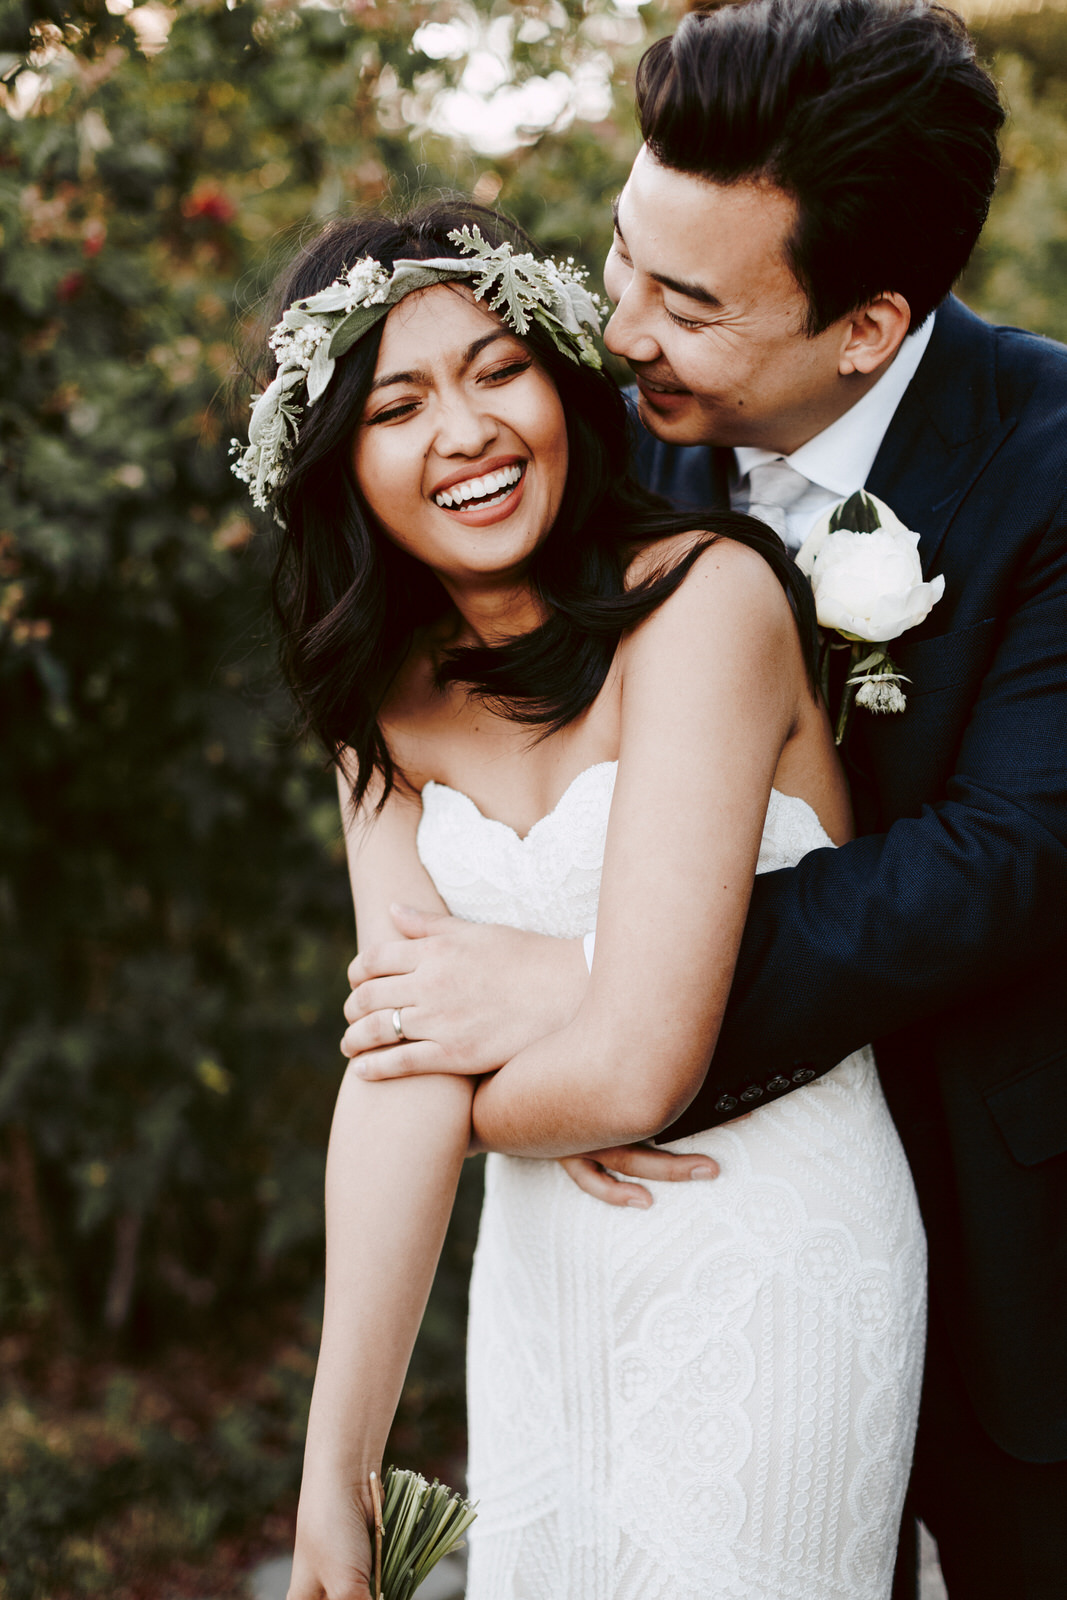 Bianca&Chris_Preview (111 of 188).jpg